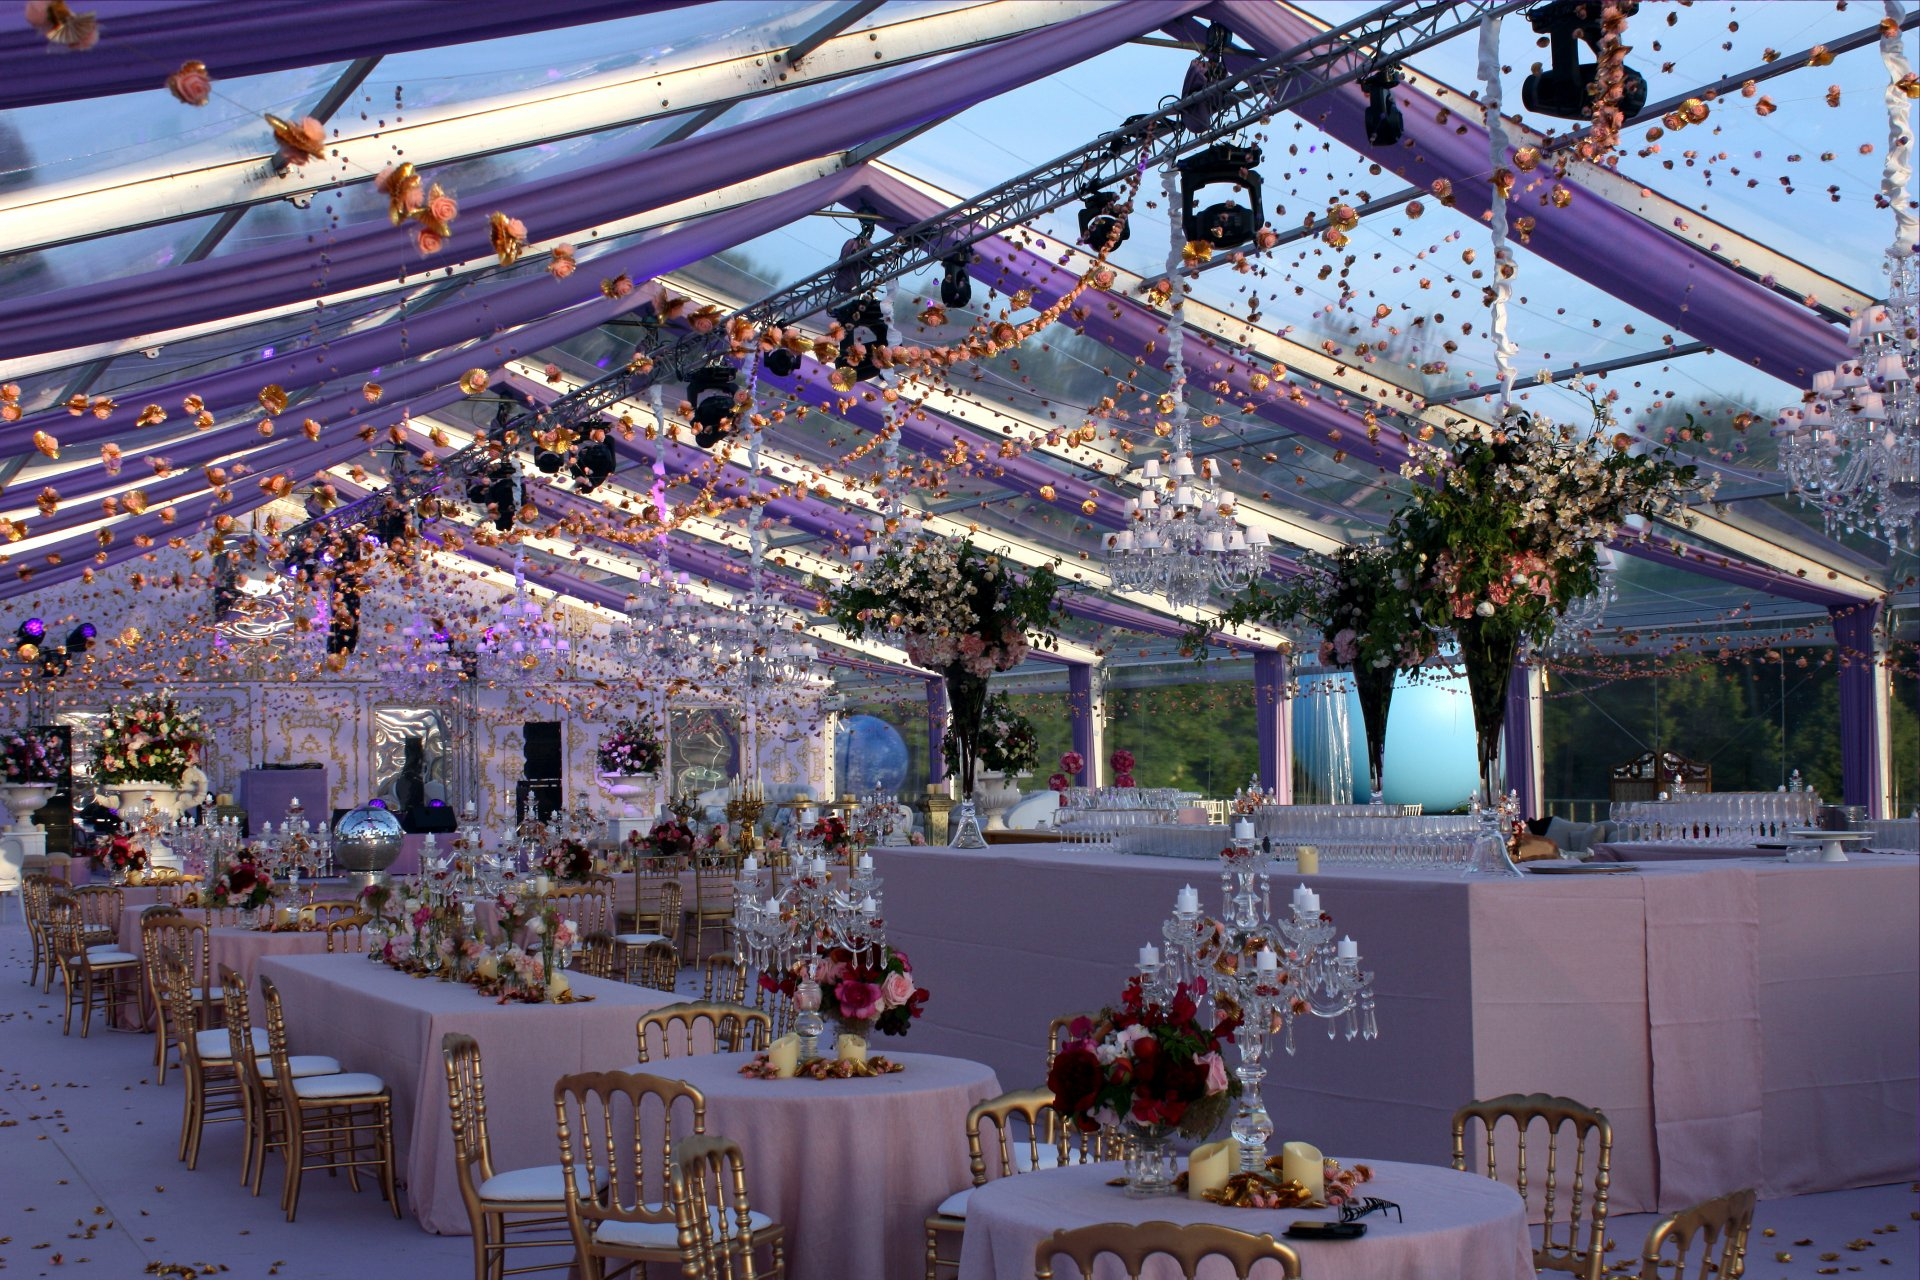 structure-mariage-luxe-tente-fleurs